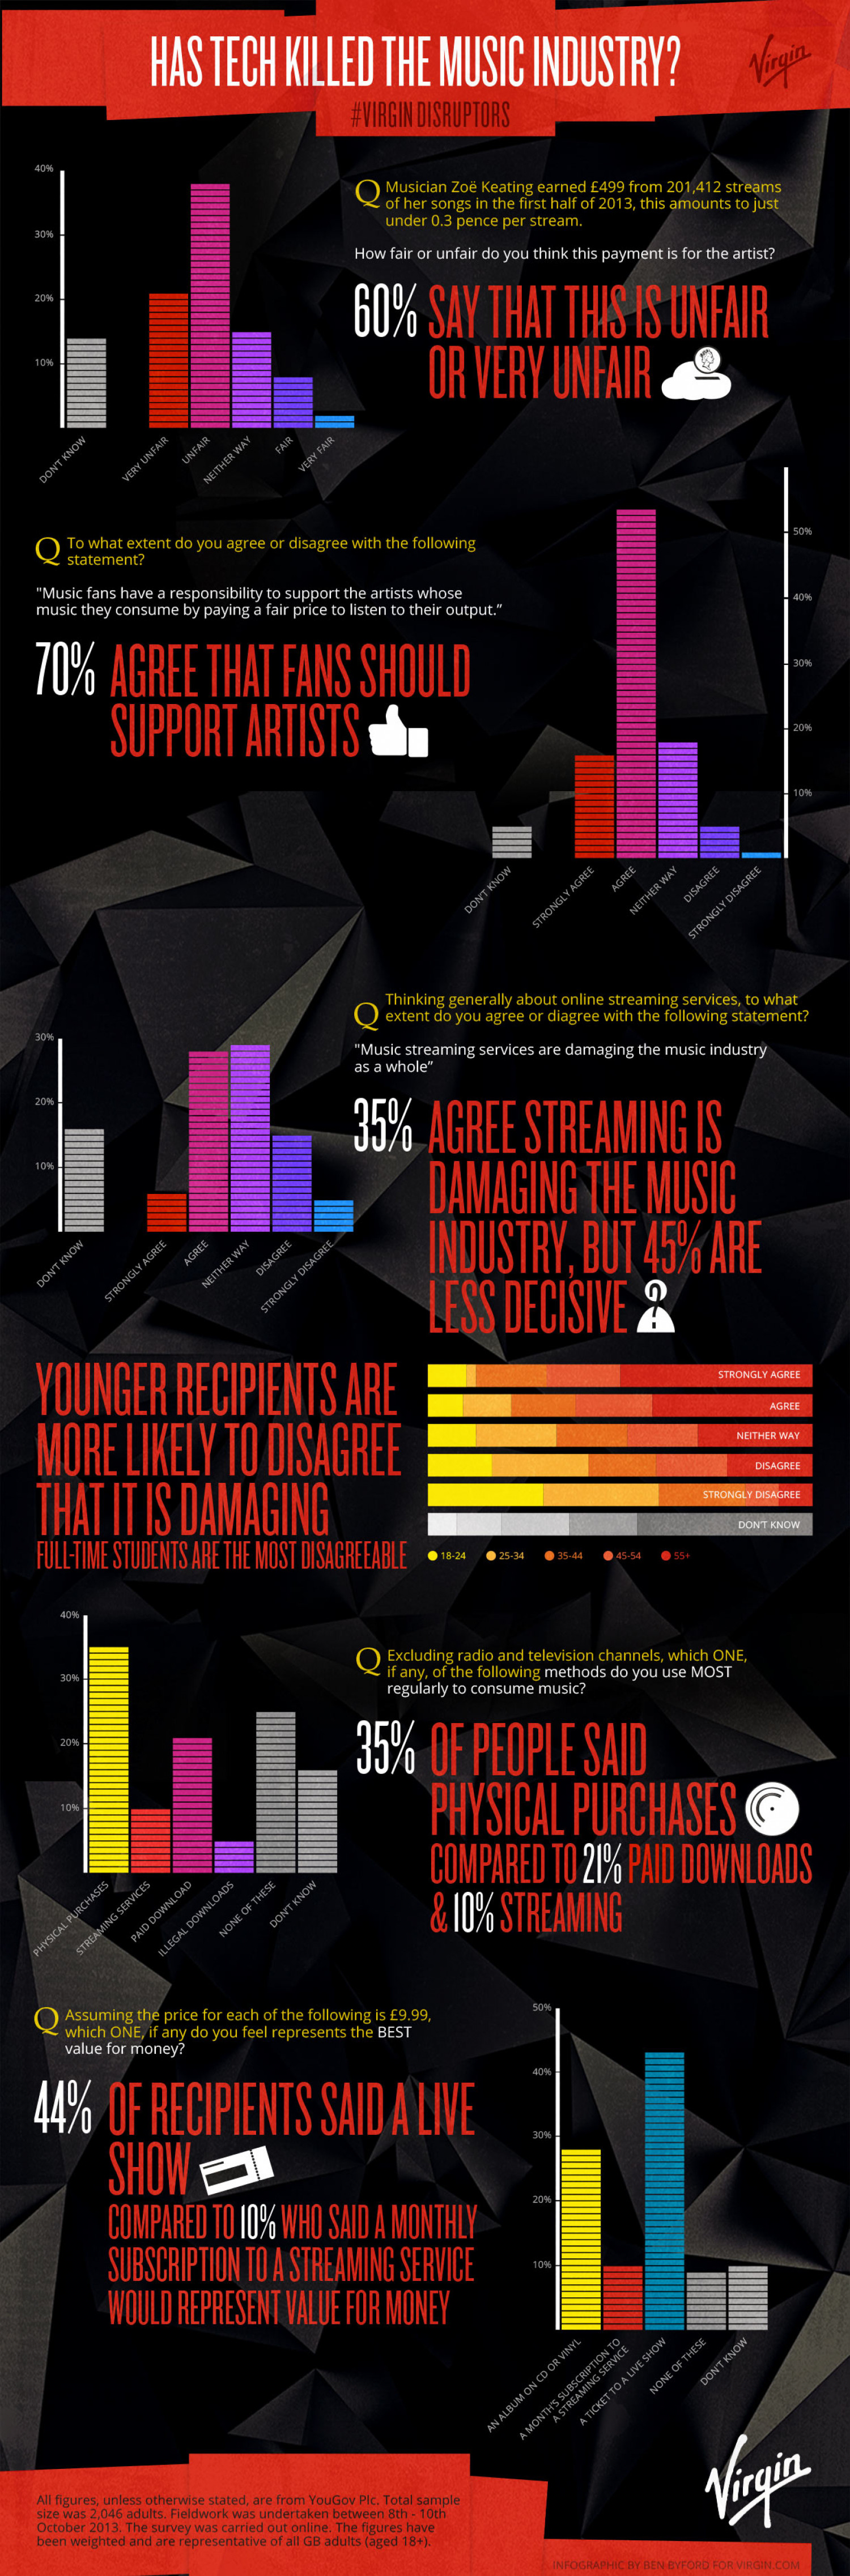 Is tech really killing the music industry? Infographic